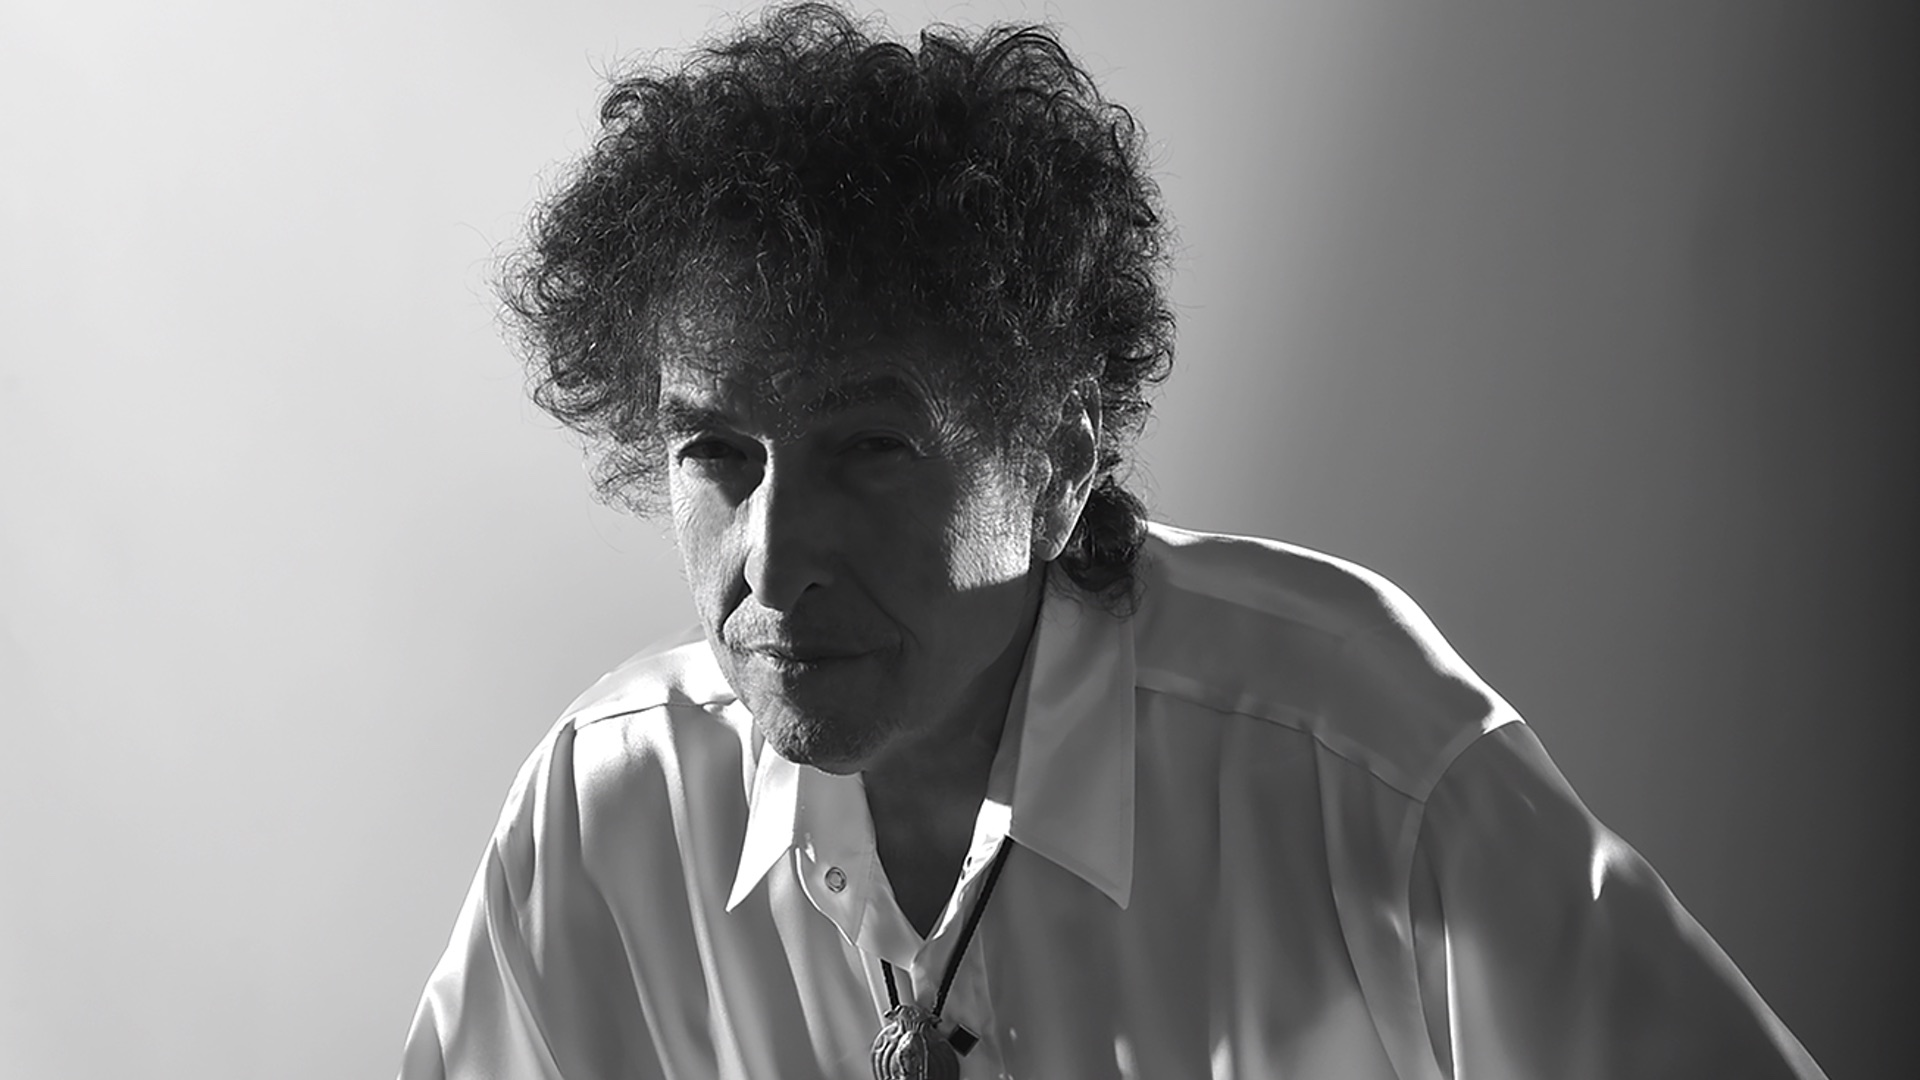 An album of previously unheard Bob Dylan and Johnny Cash collaborations is on its way